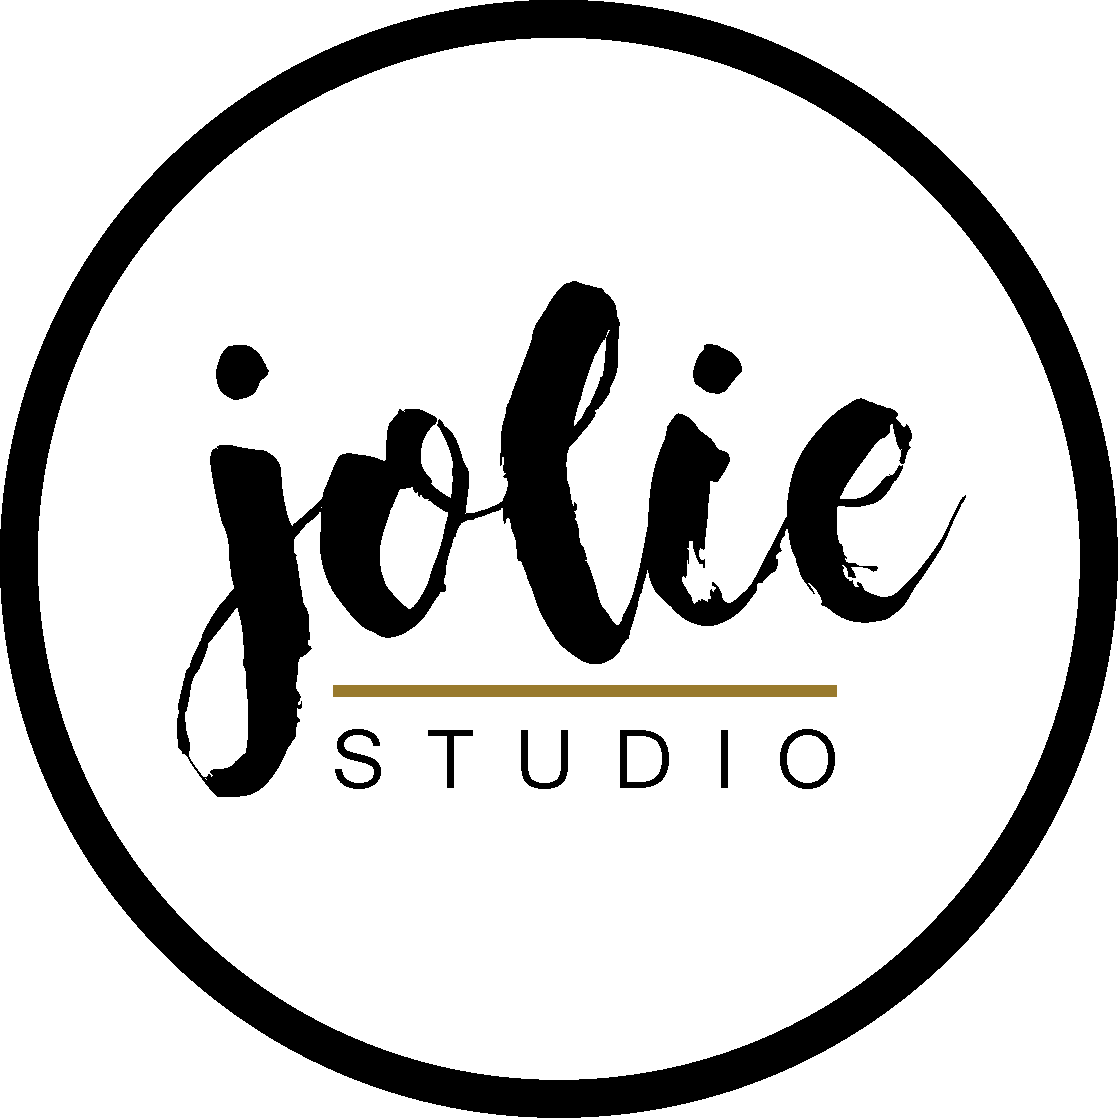 JOLIE STUDIO - An intimate industrial chic event space in Brooklyn NY